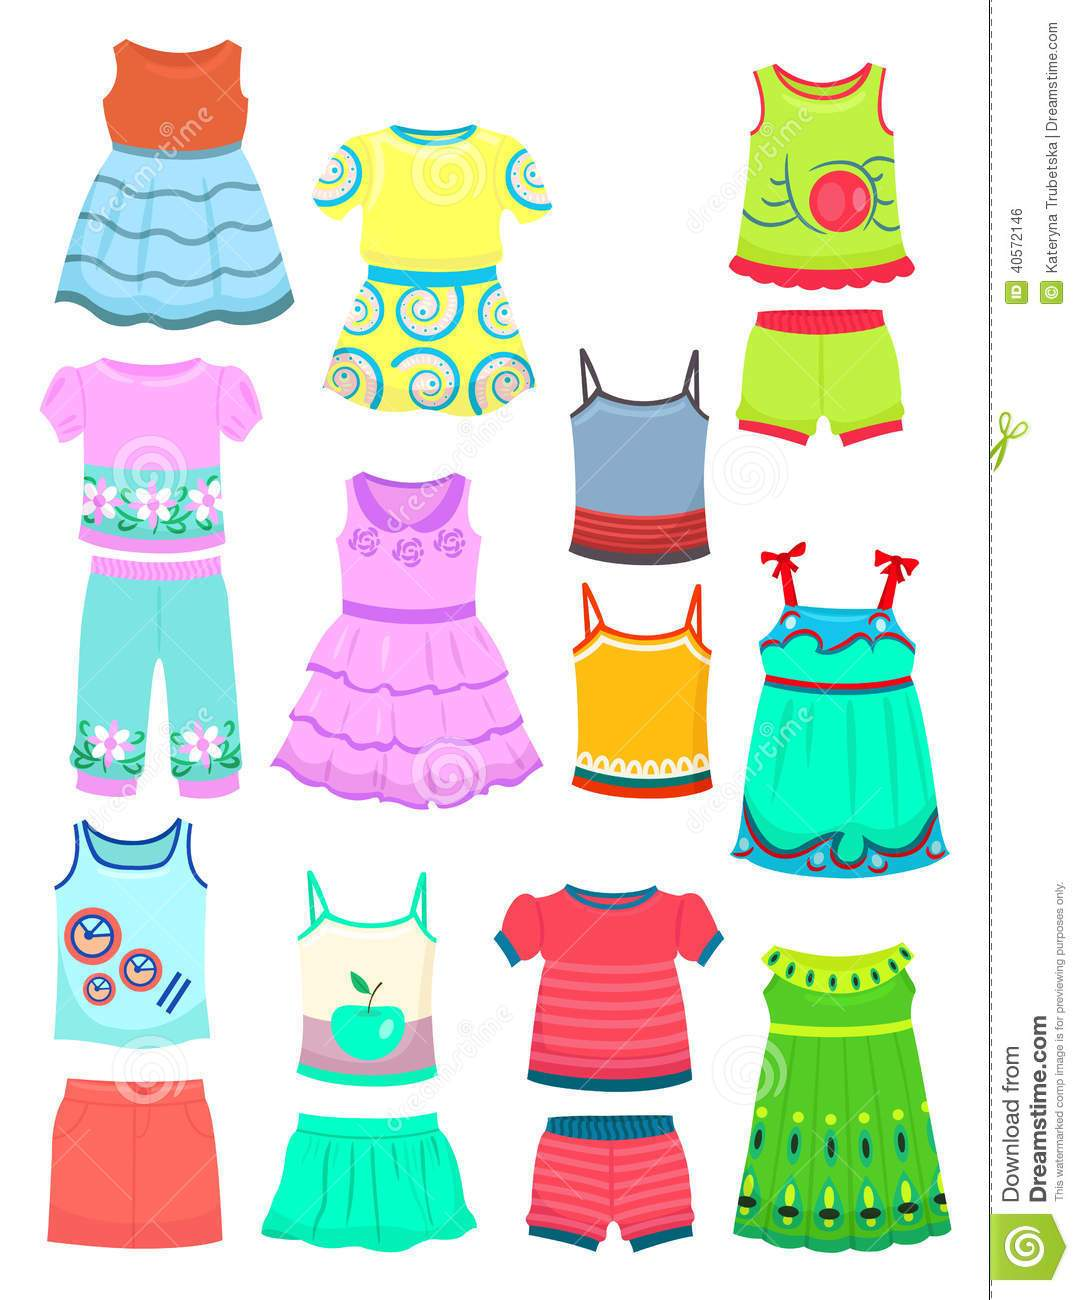 Girls clothes clipart 3 » Clipart Portal.